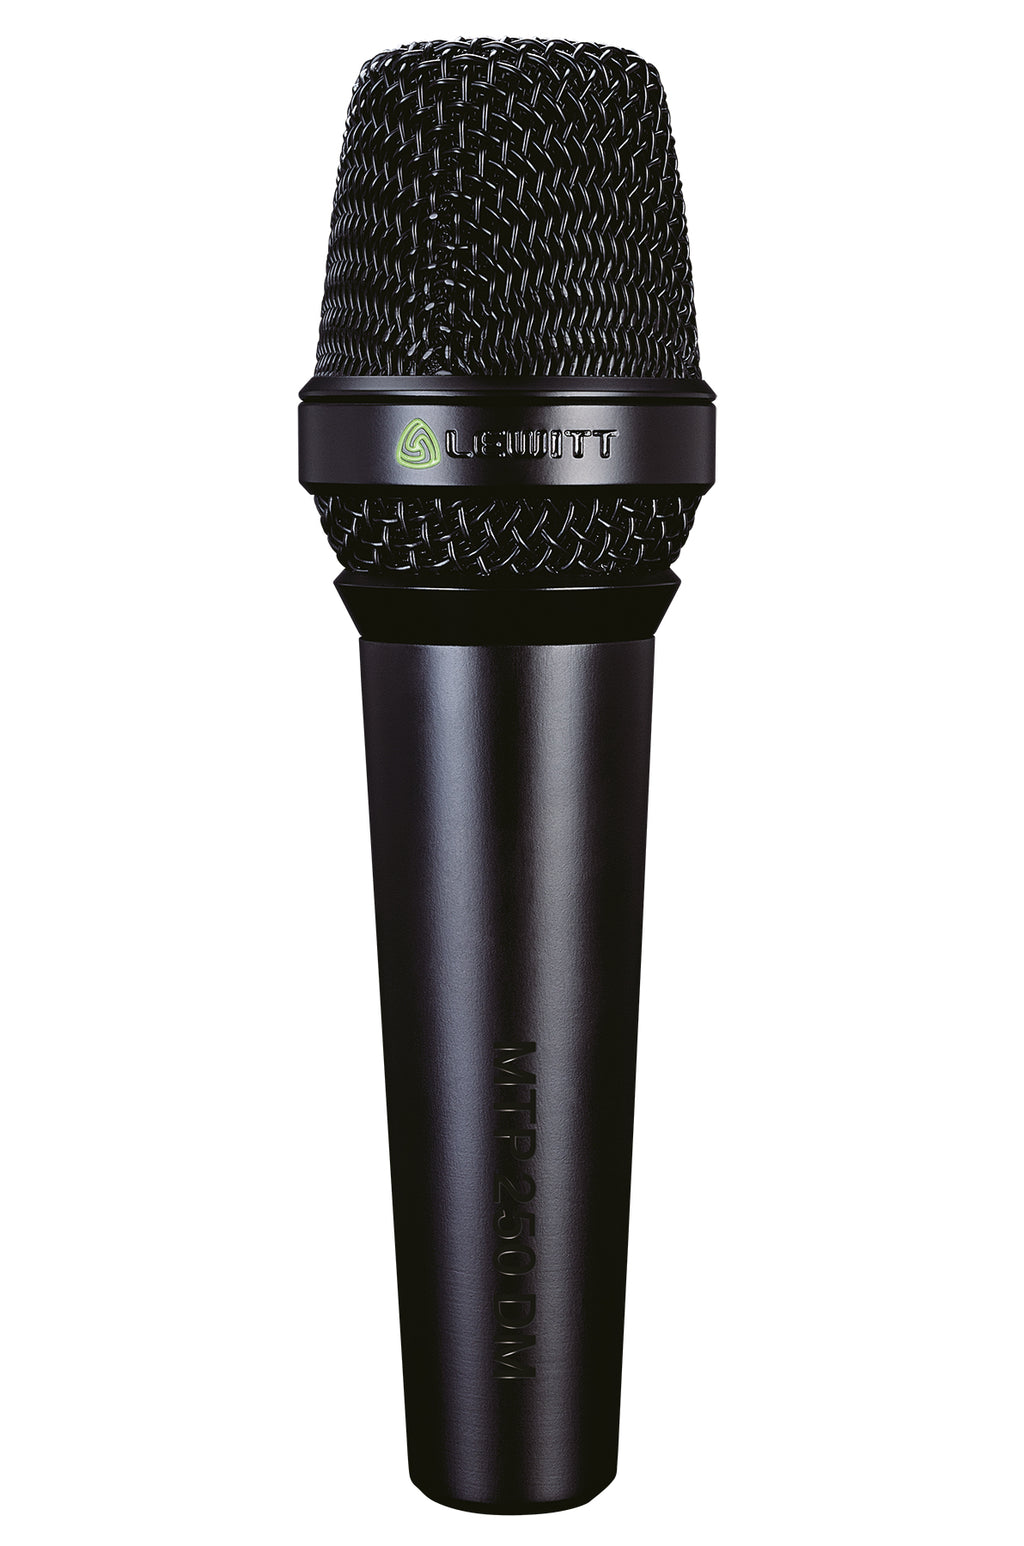 Lewitt MTP 250 DM Microphone (With Switch)